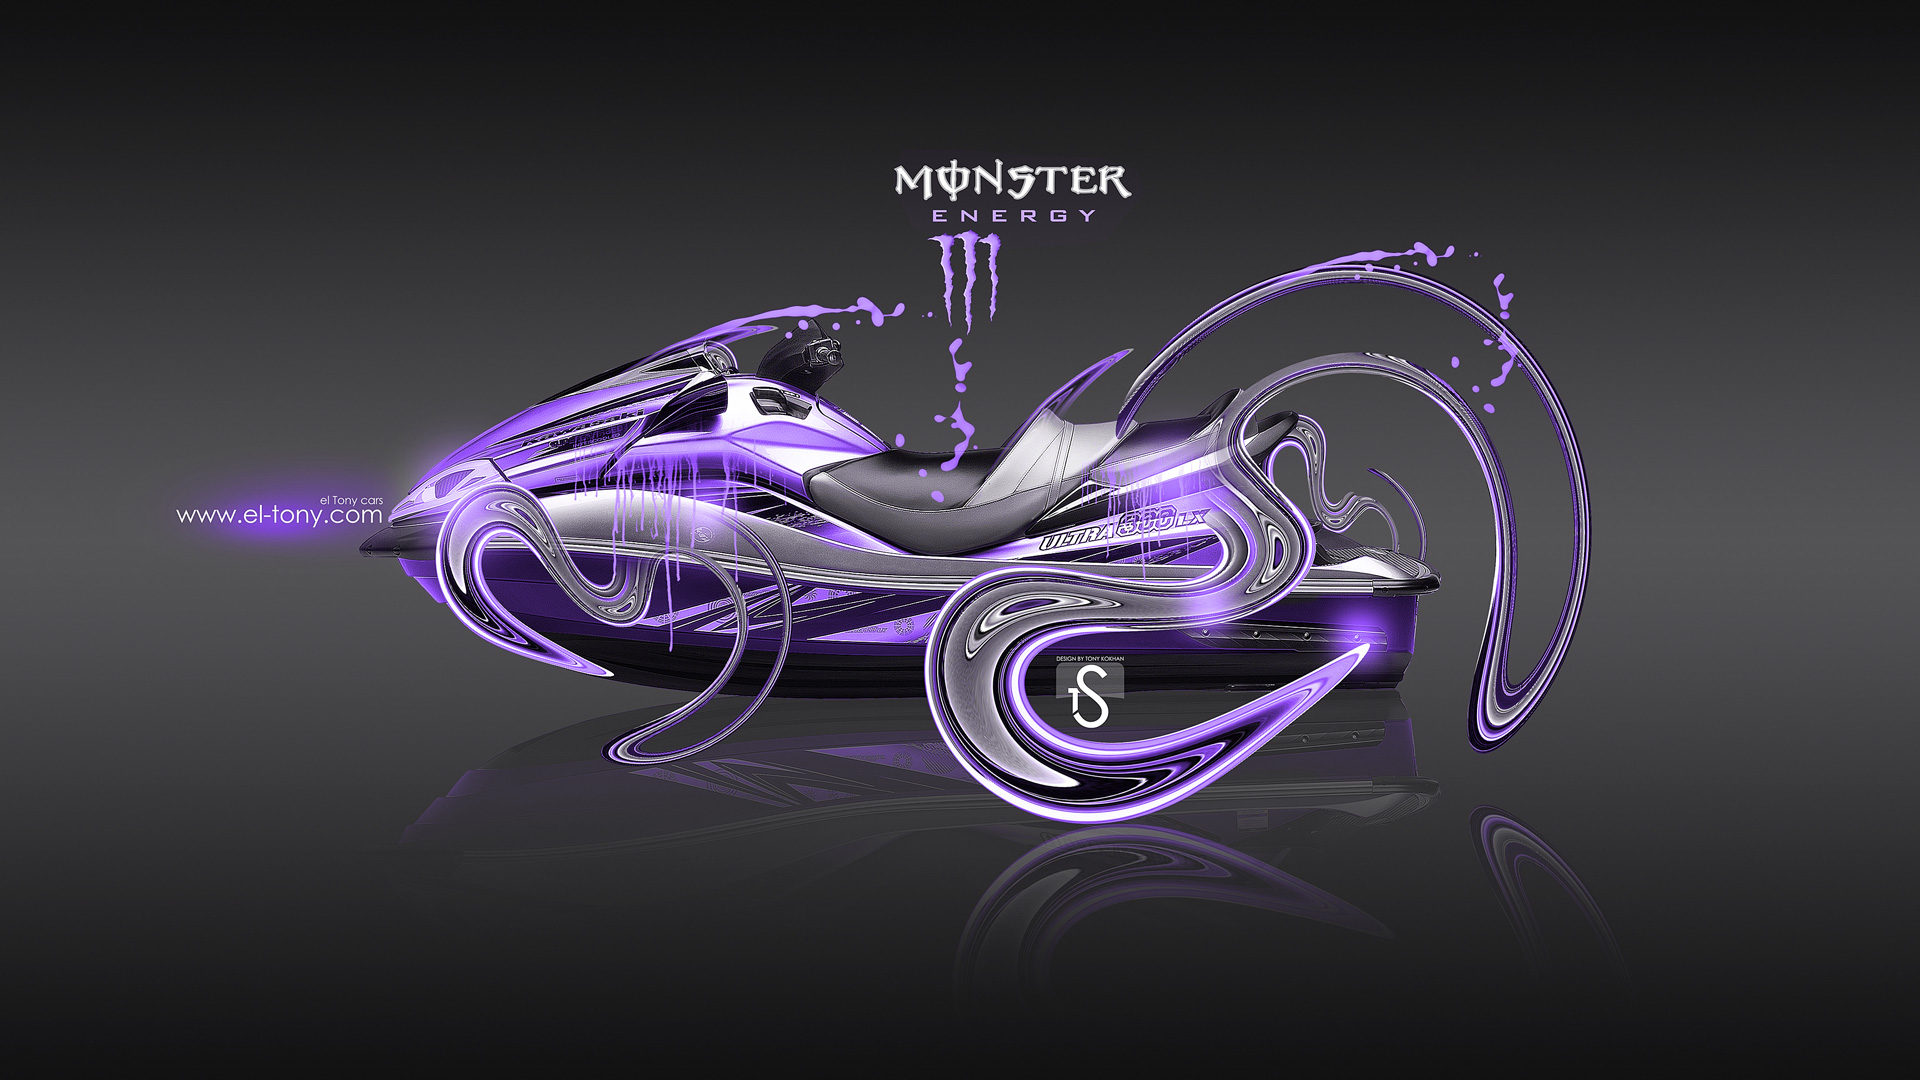 Monster Energy 3d Live Wallpaper Monster Energy Jetski Kawasaki Ultra 300lx Plastic Moto